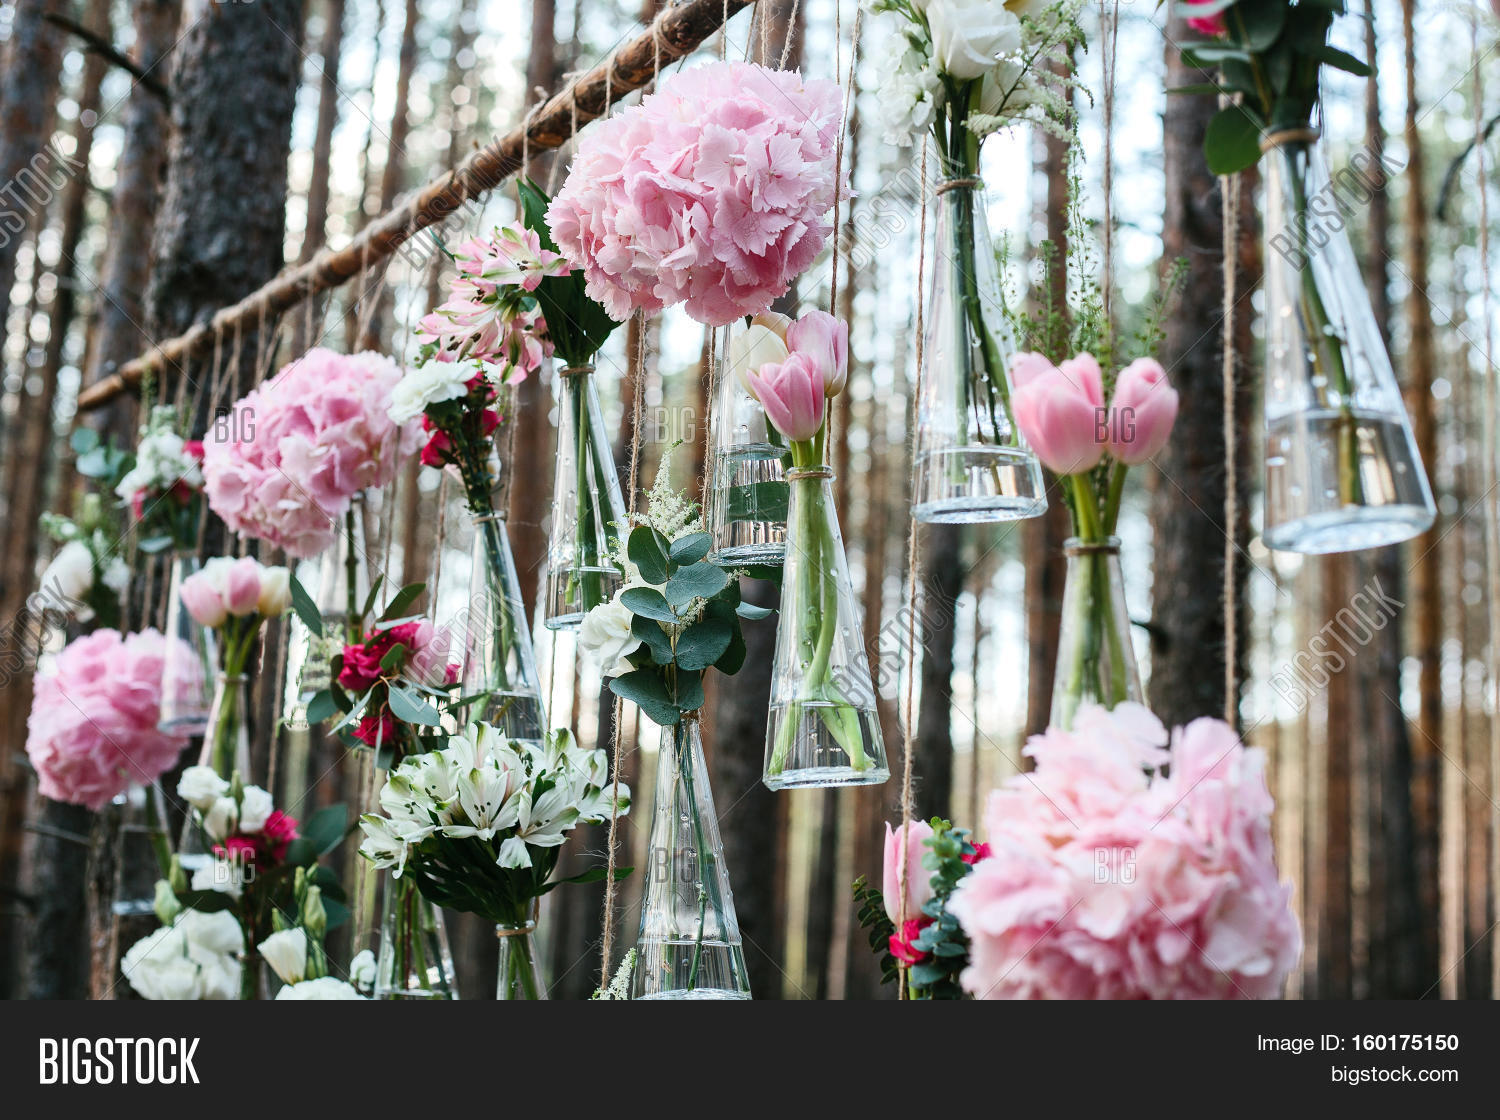 Wedding Flowers Decoration Arch In The Forest The Idea Of A Wedding Flower Decoration Wedding